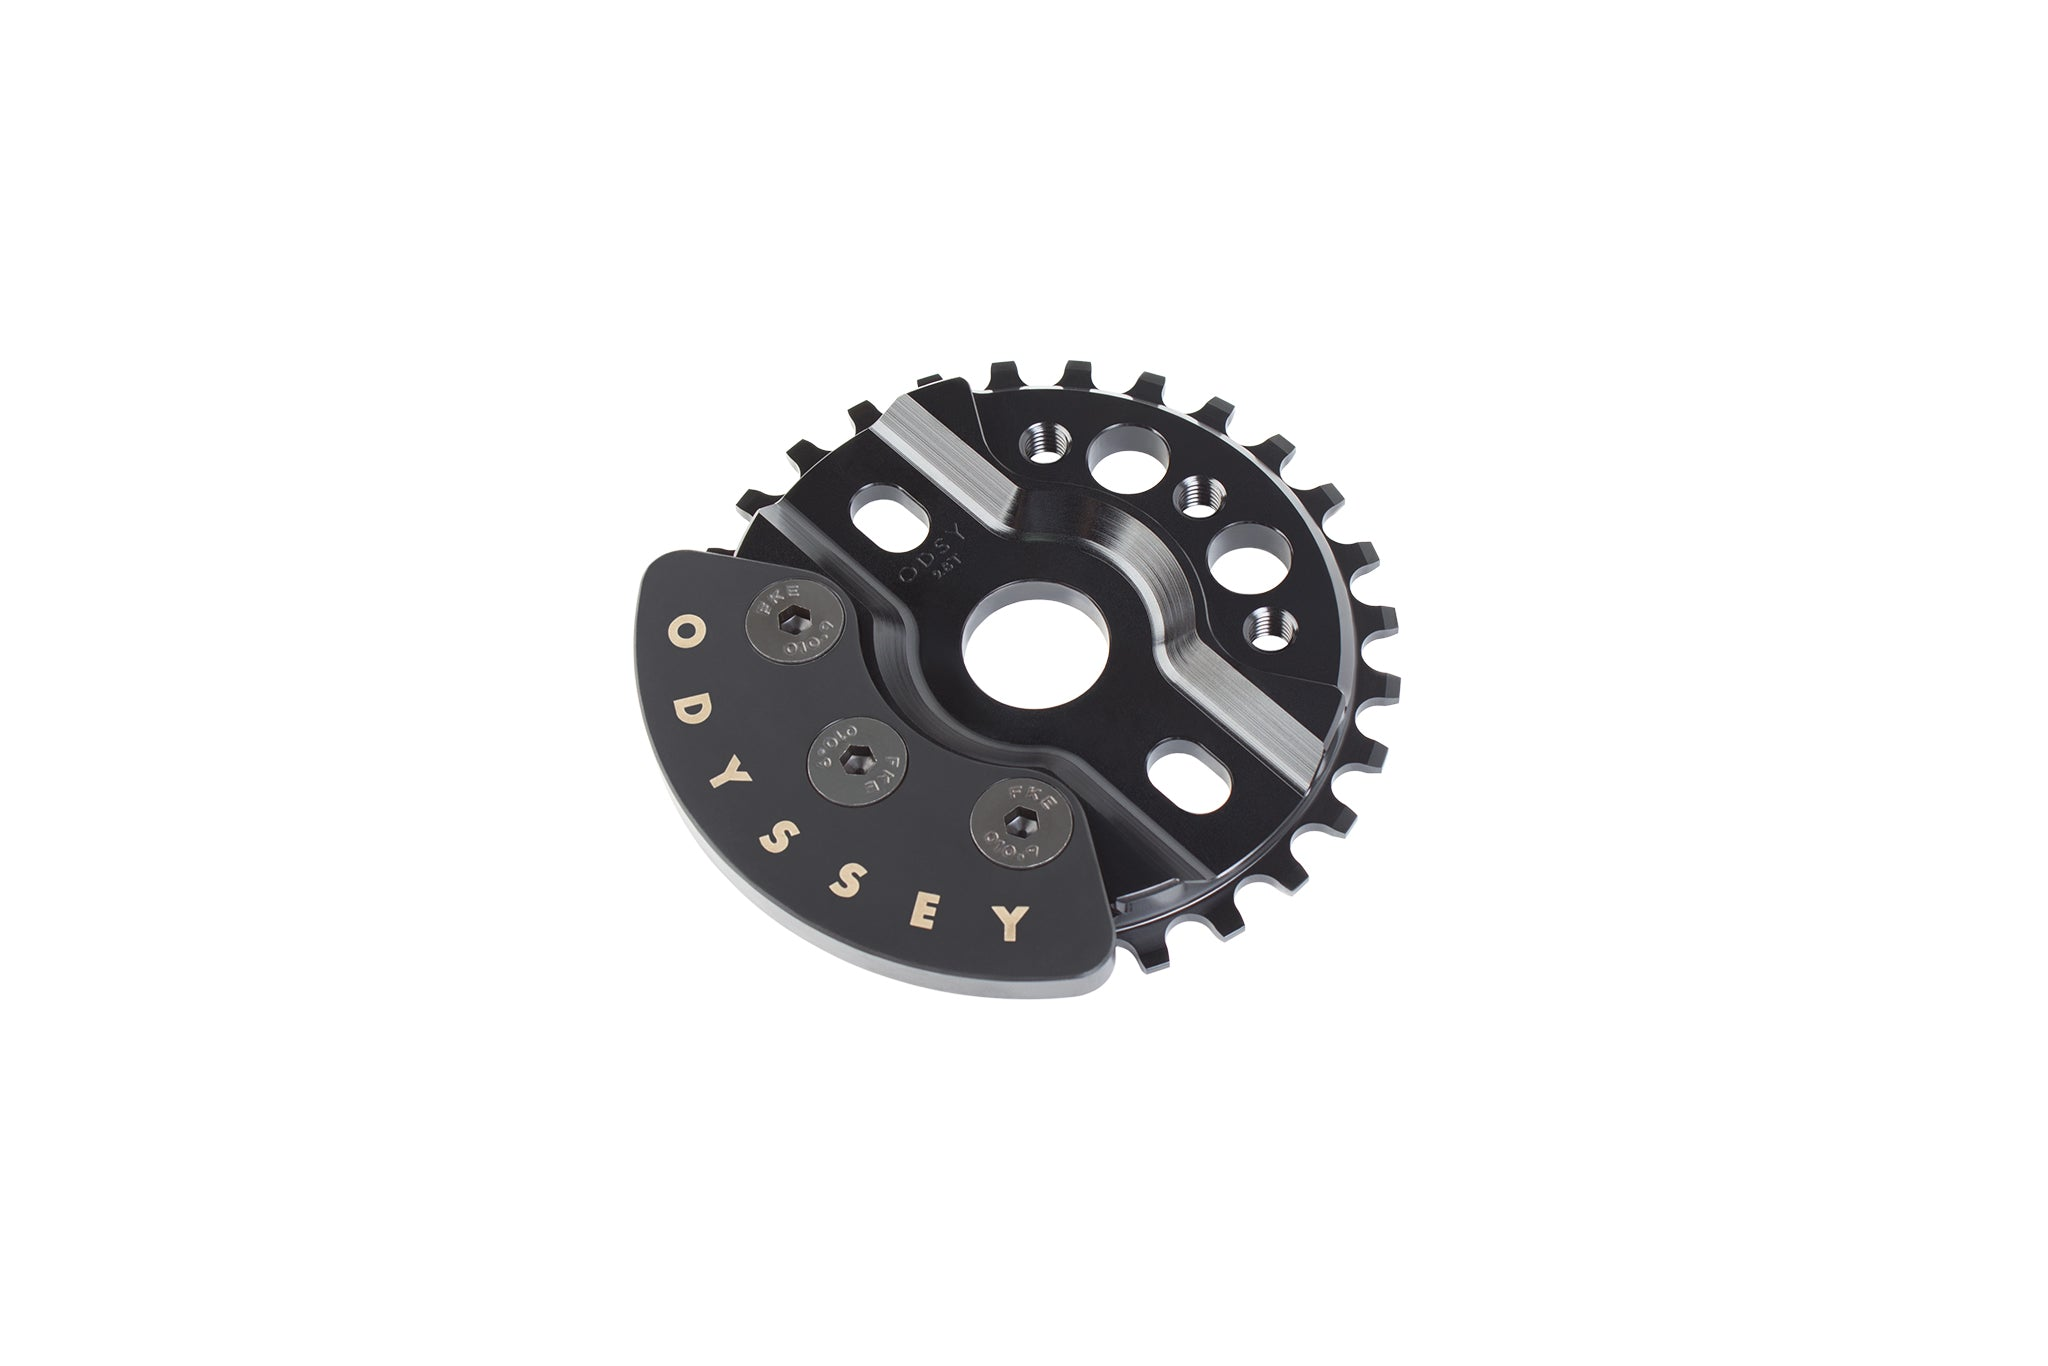 ODYSSEY HALFBASH 28T BLACK BICYCLE SPROCKET Chainrings & BMX Sprockets Bicycle Components & Parts